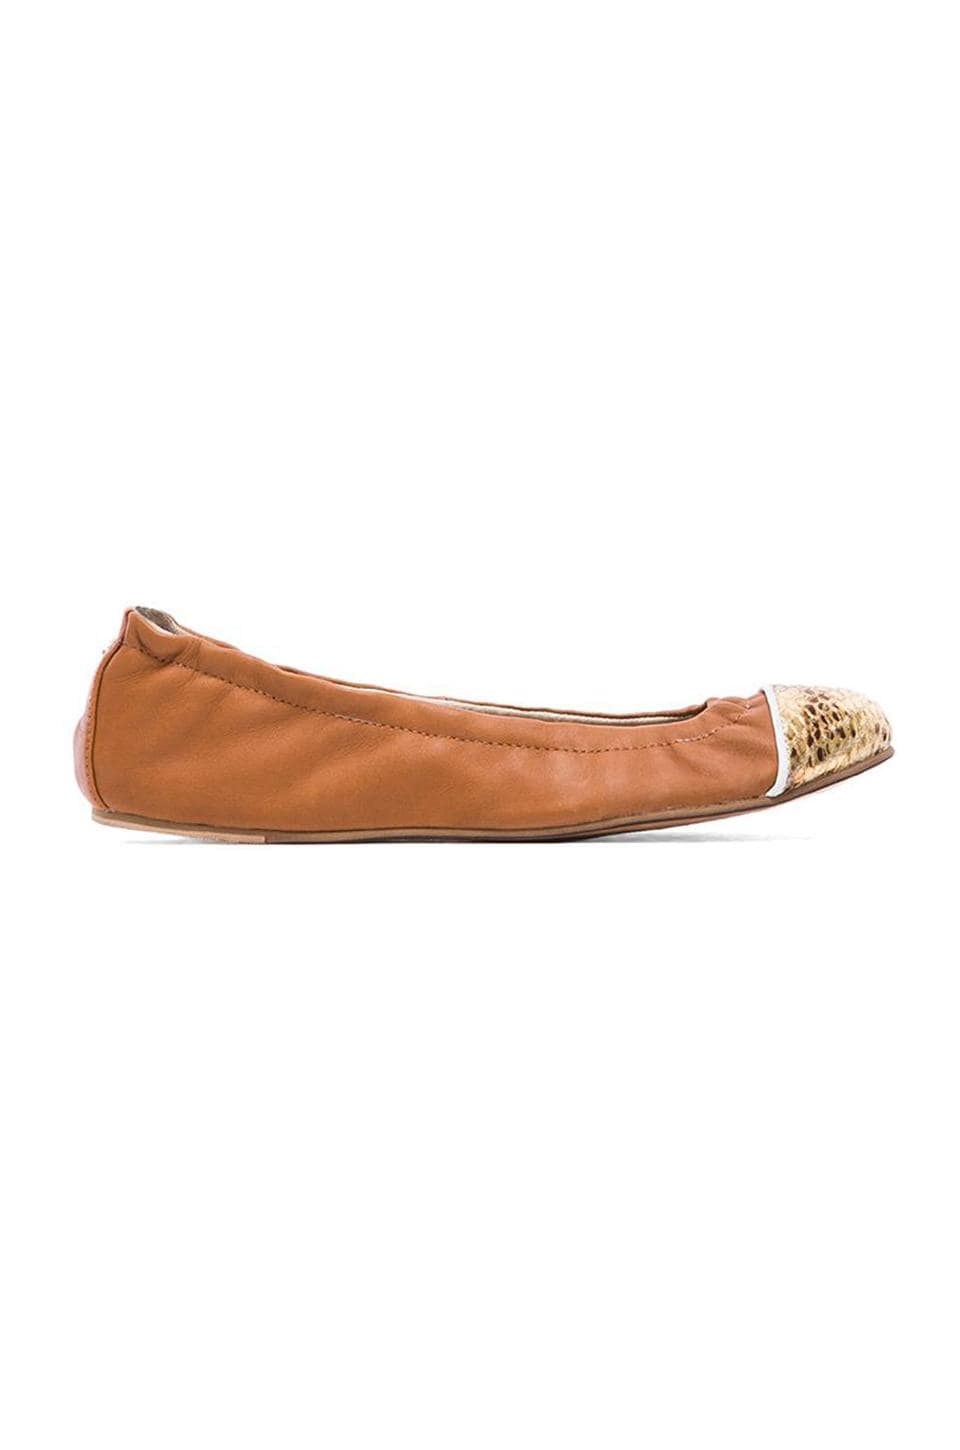 Yosi Samra Marni Flexible Contrast Flat in Whiskey & Gold